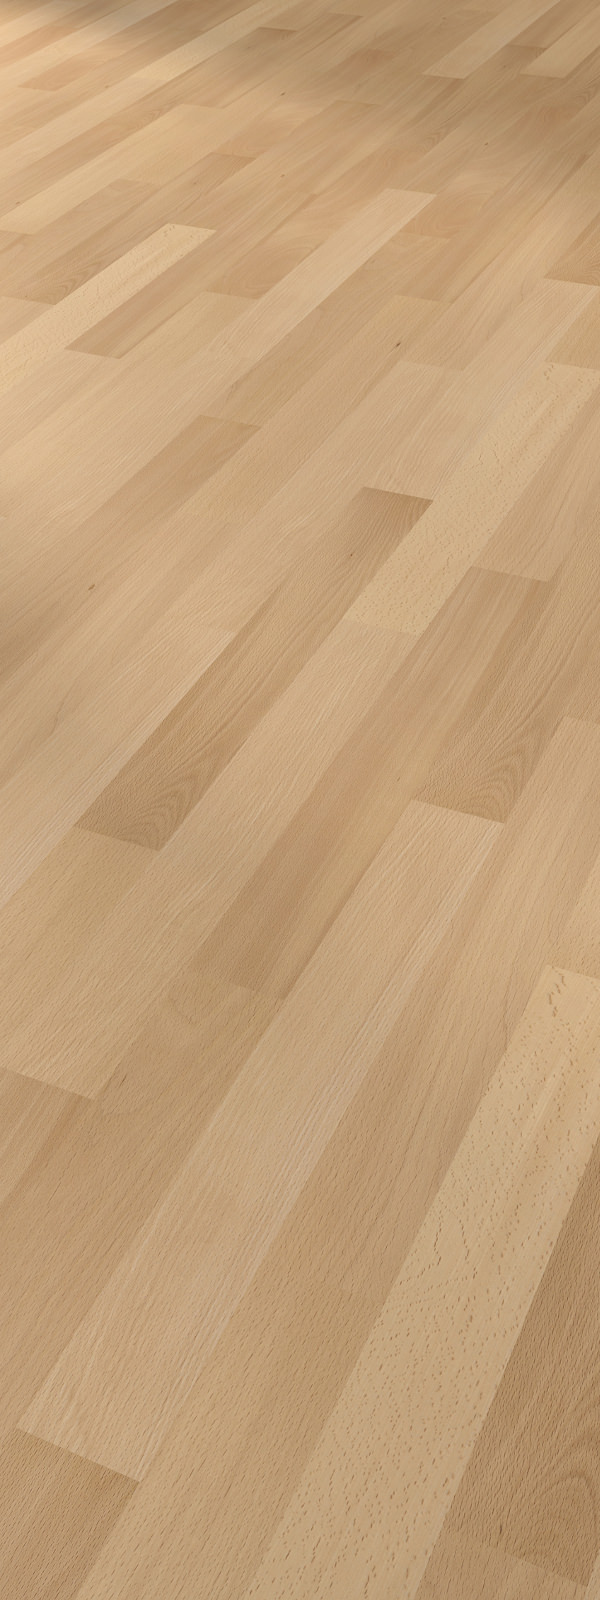 Board PREMIUM FLOOR HERRINGBONE Steamed Beech